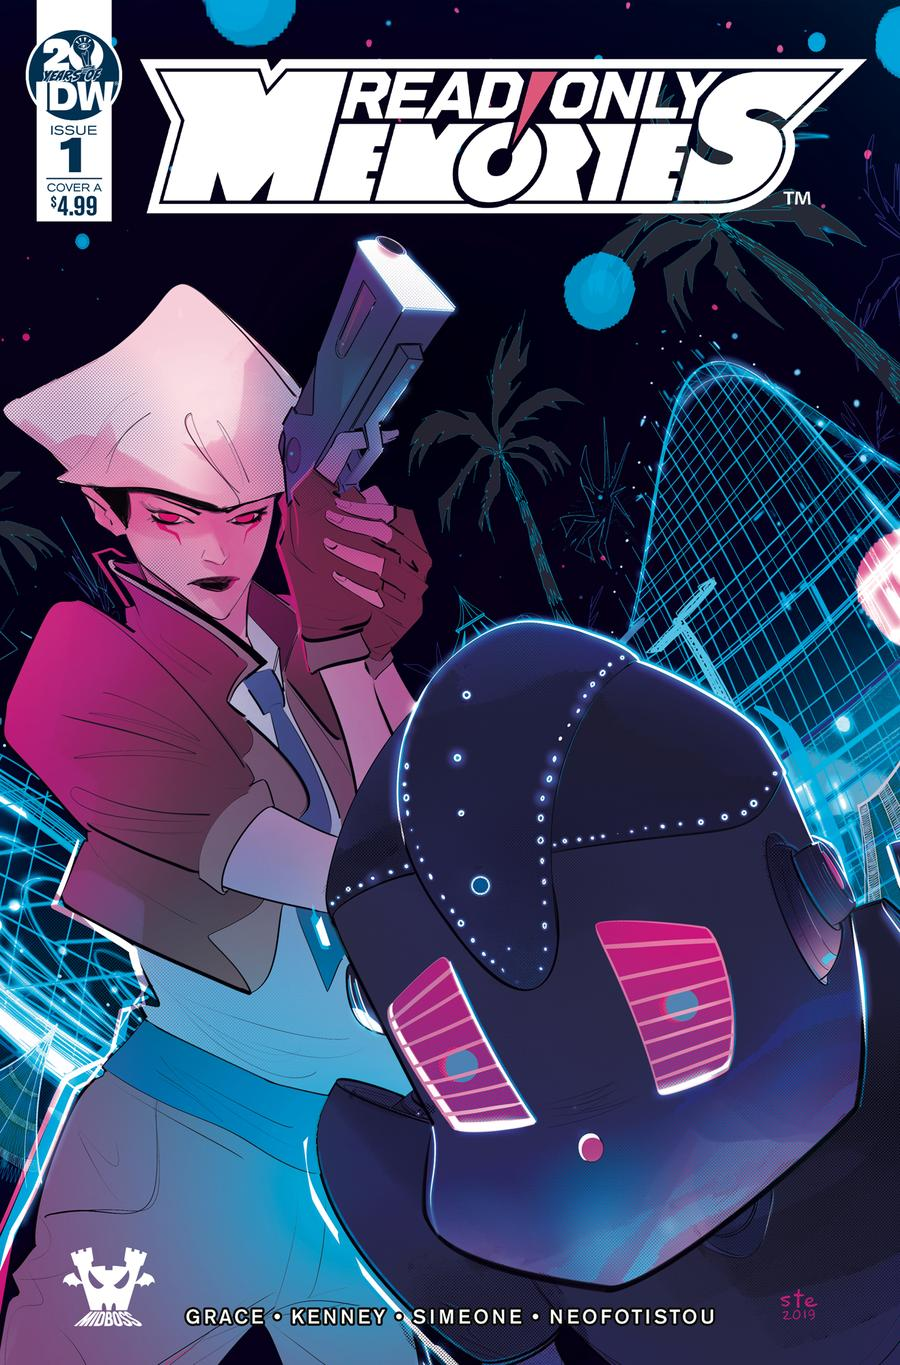 Read Only Memories #1 Cover A Regular Stefano Simeone Cover